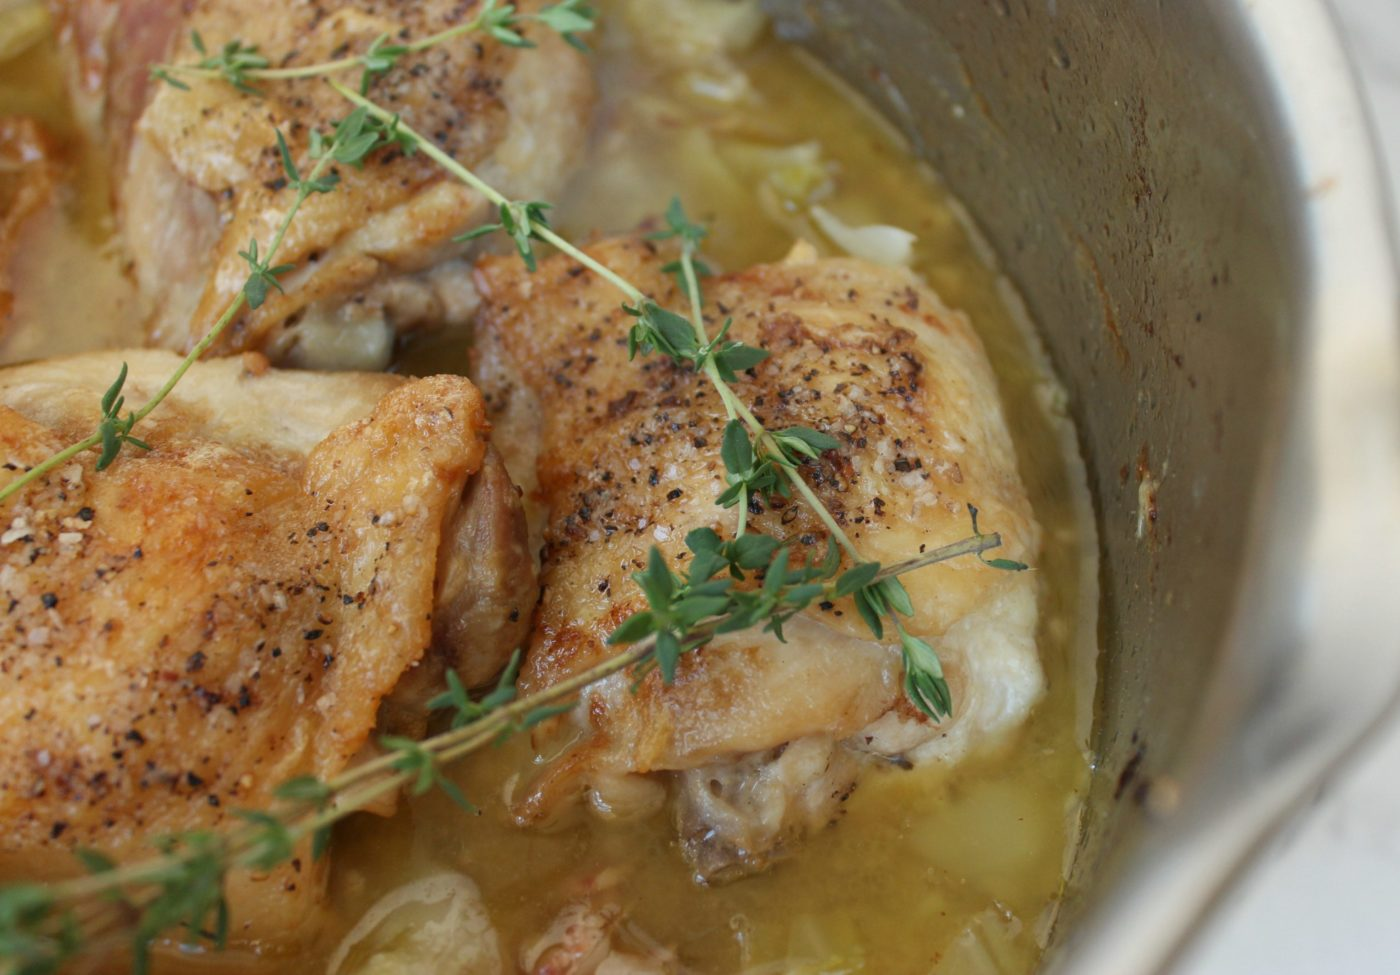 Braised chicken thighs and cabbage.